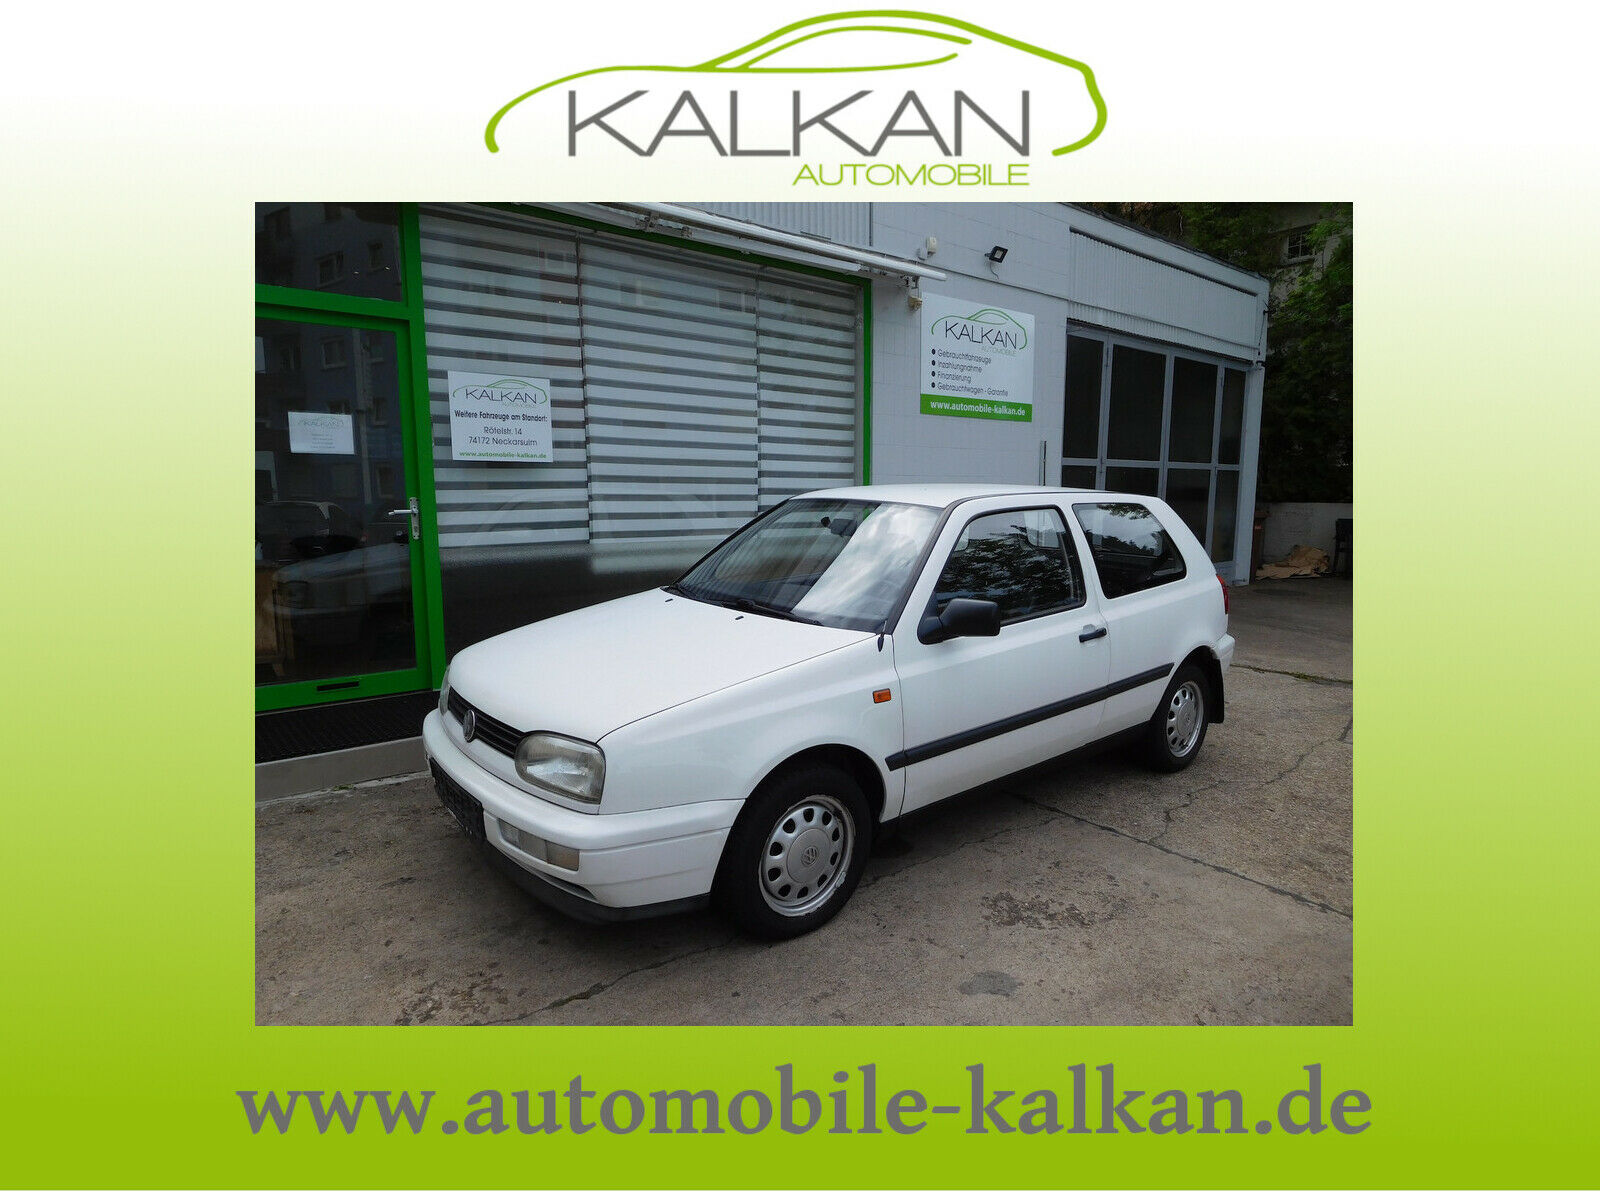 VW Golf III Lim. CL #Automatik #137 tkm